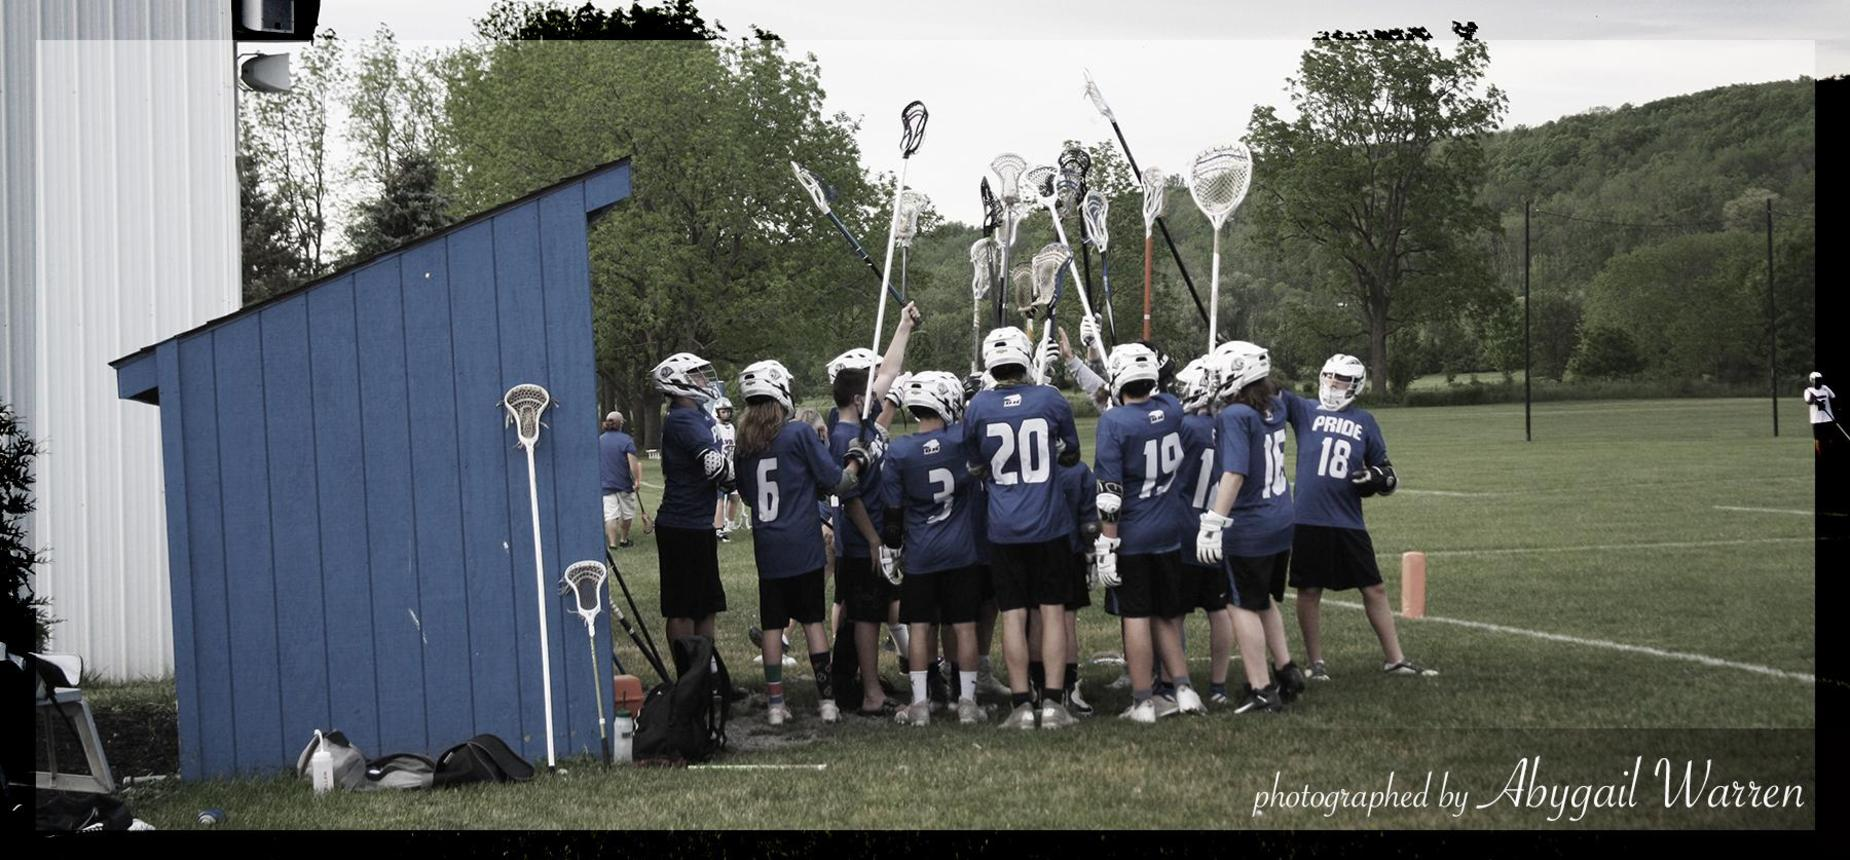 HCS lacrosse players by dugout